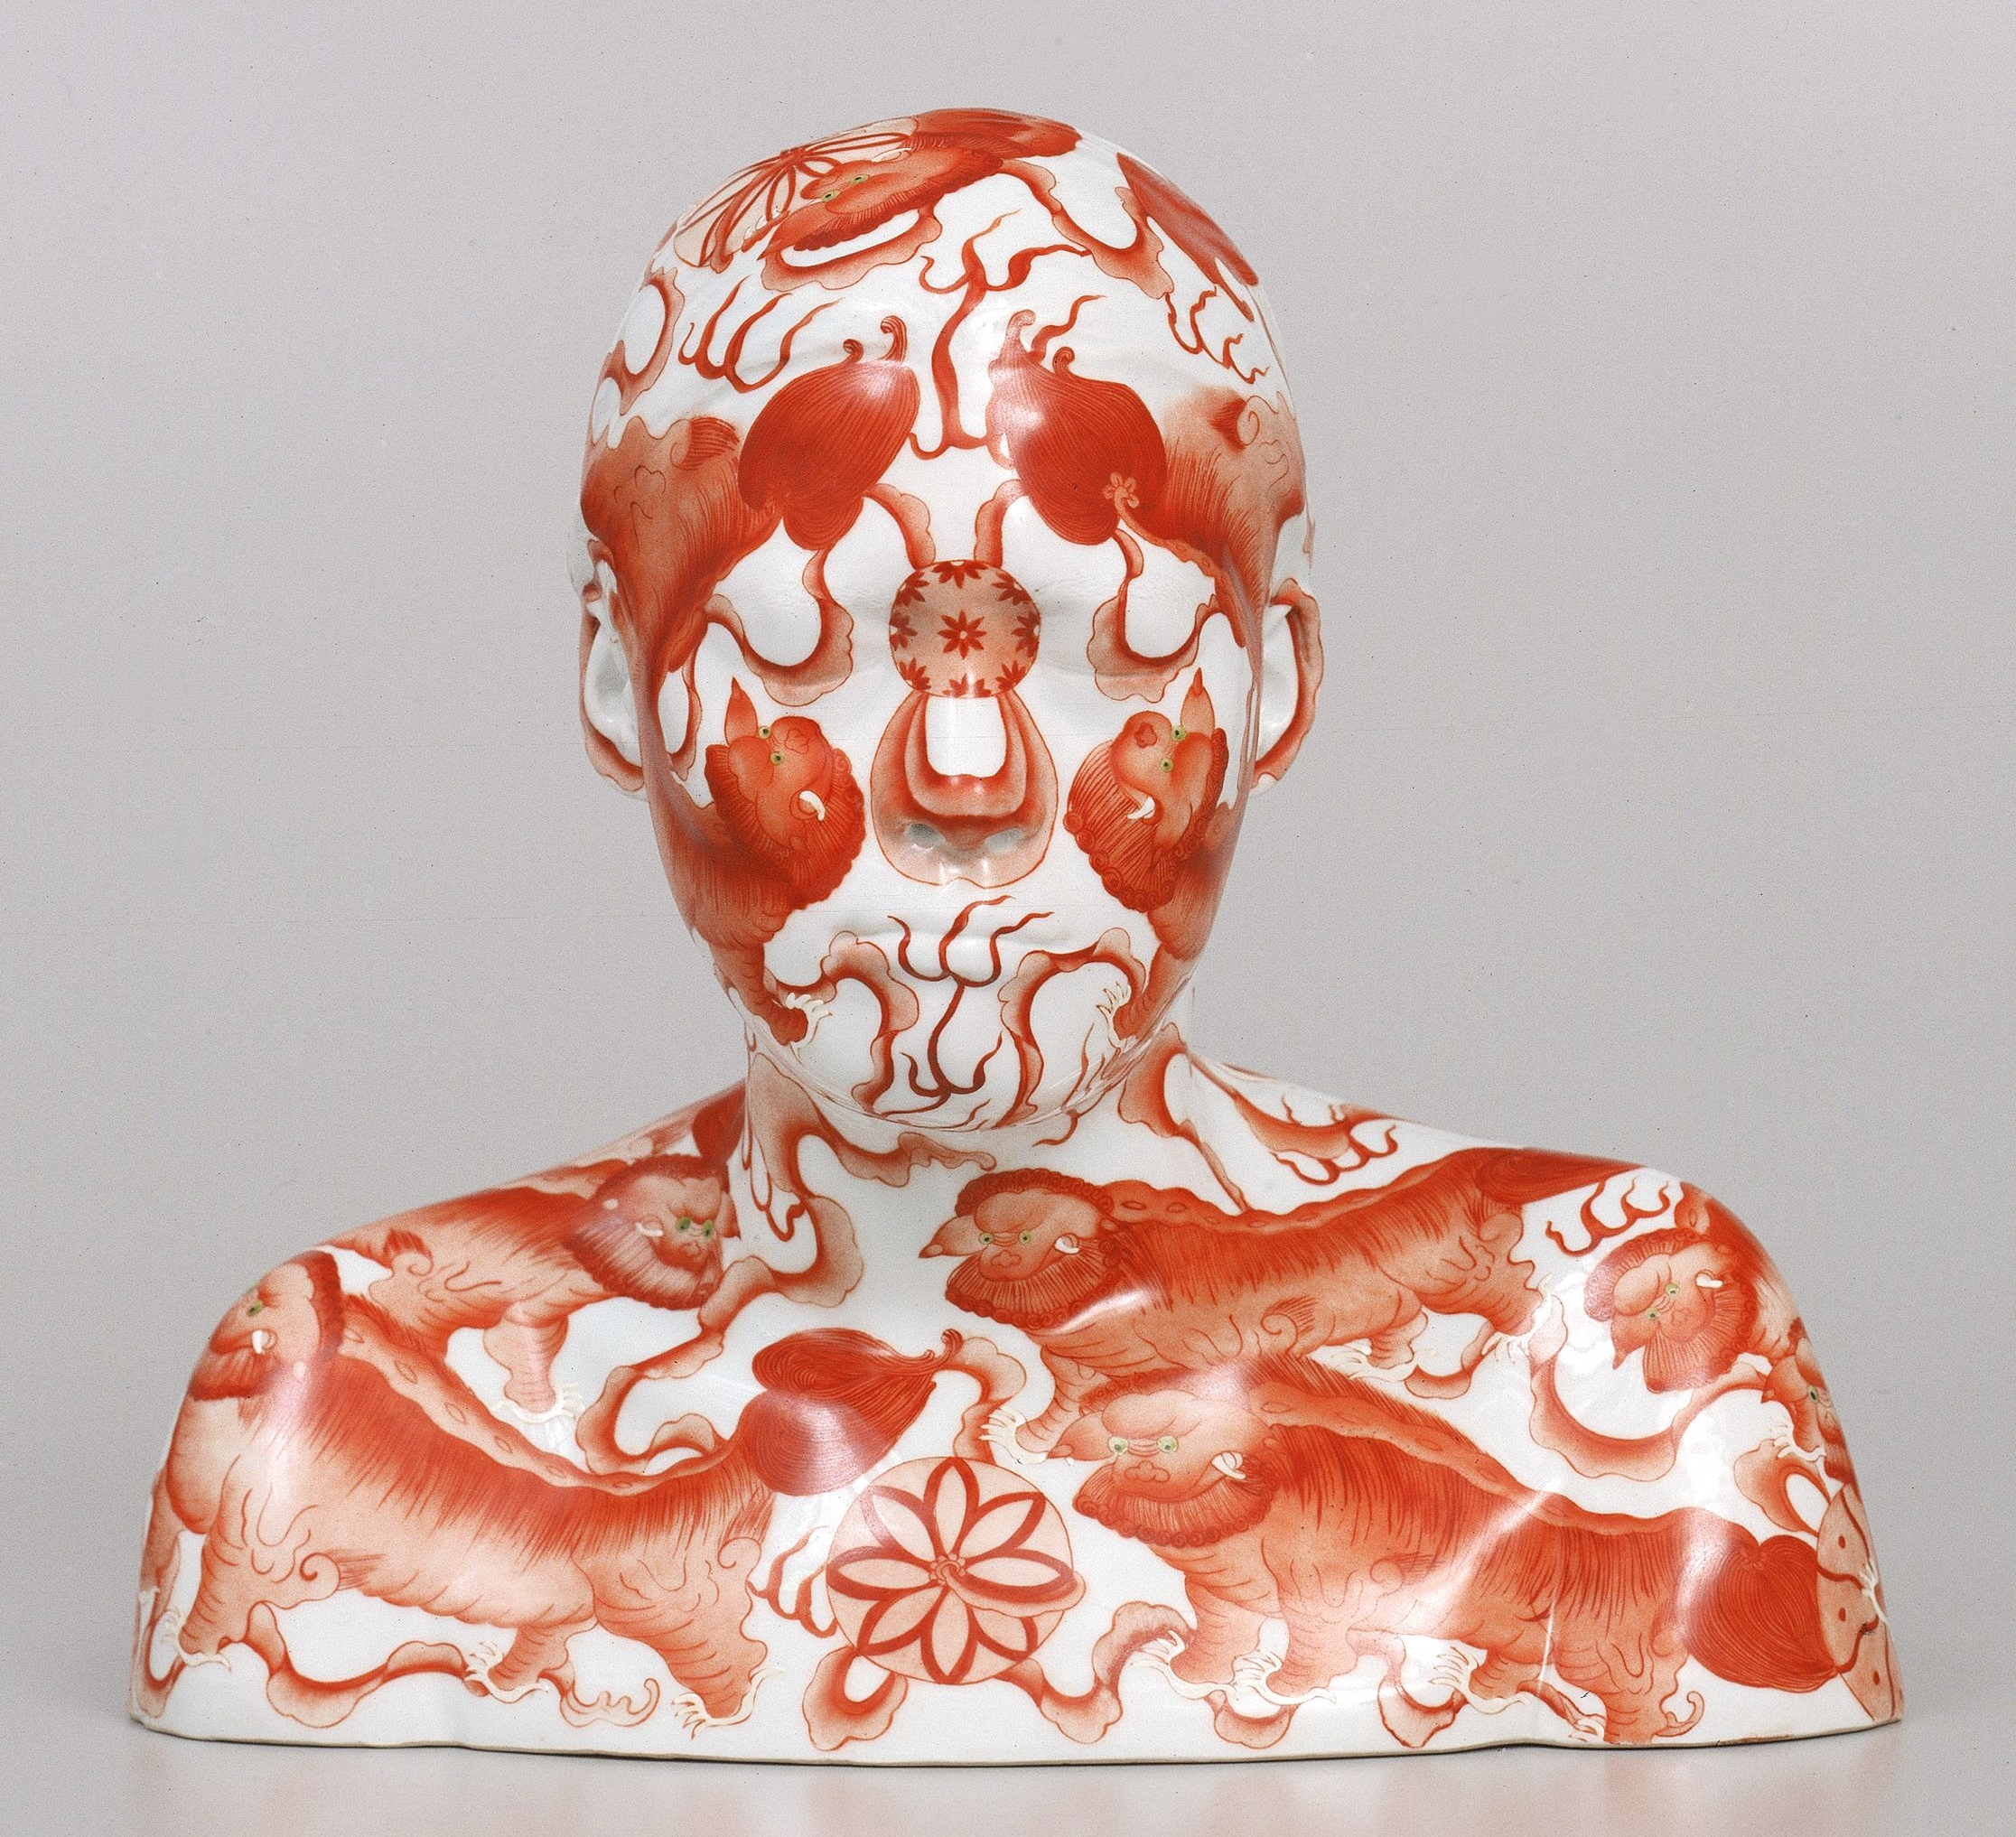 Ah Xian,  China, China – bust 11 , 1999, porcelain. Courtesy of the artist